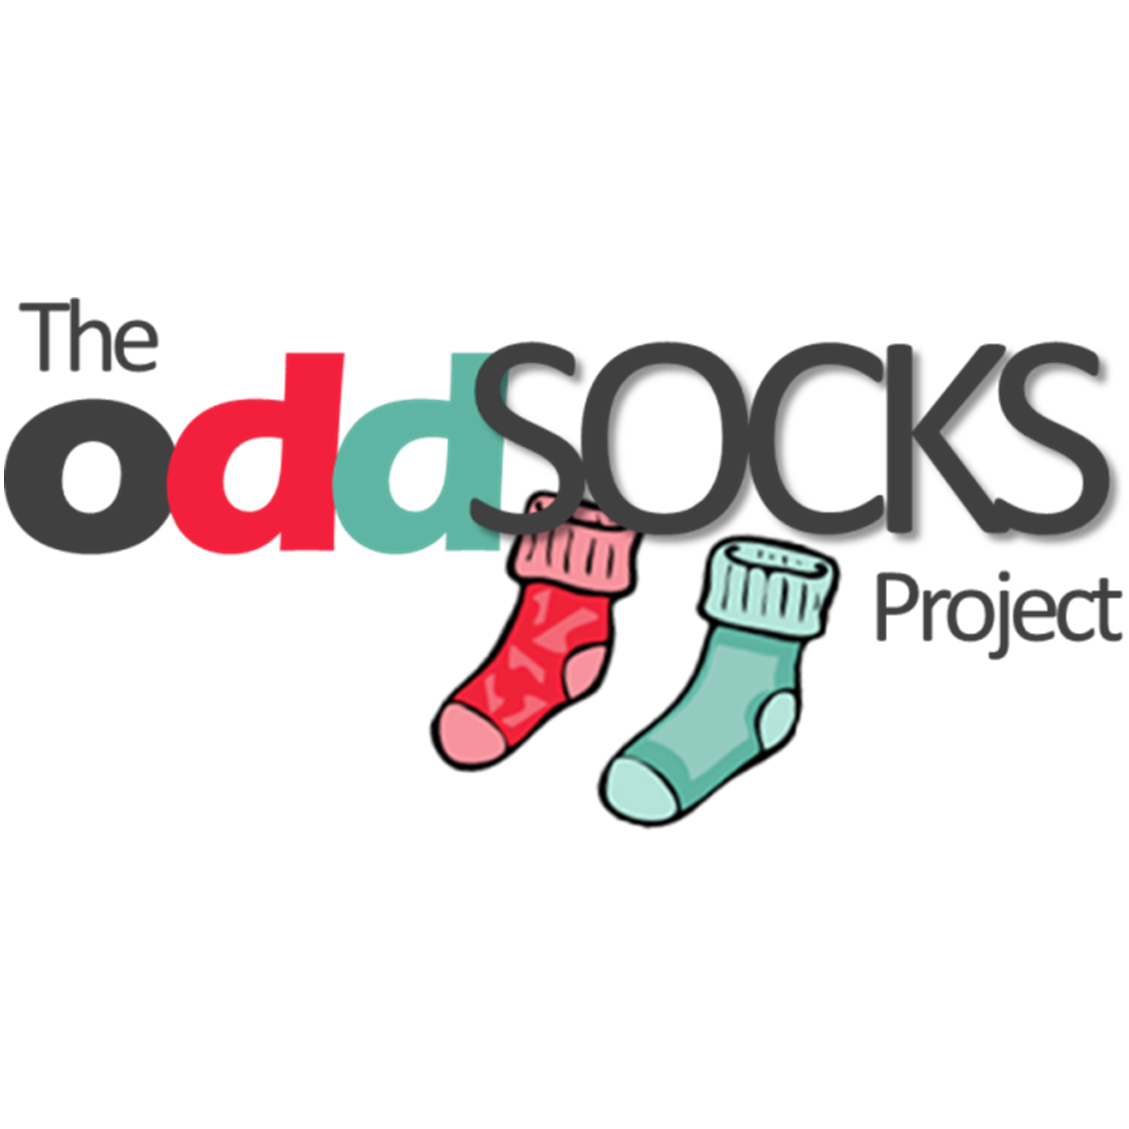 116 LoveLocal Logo Design The Odd Socks Project